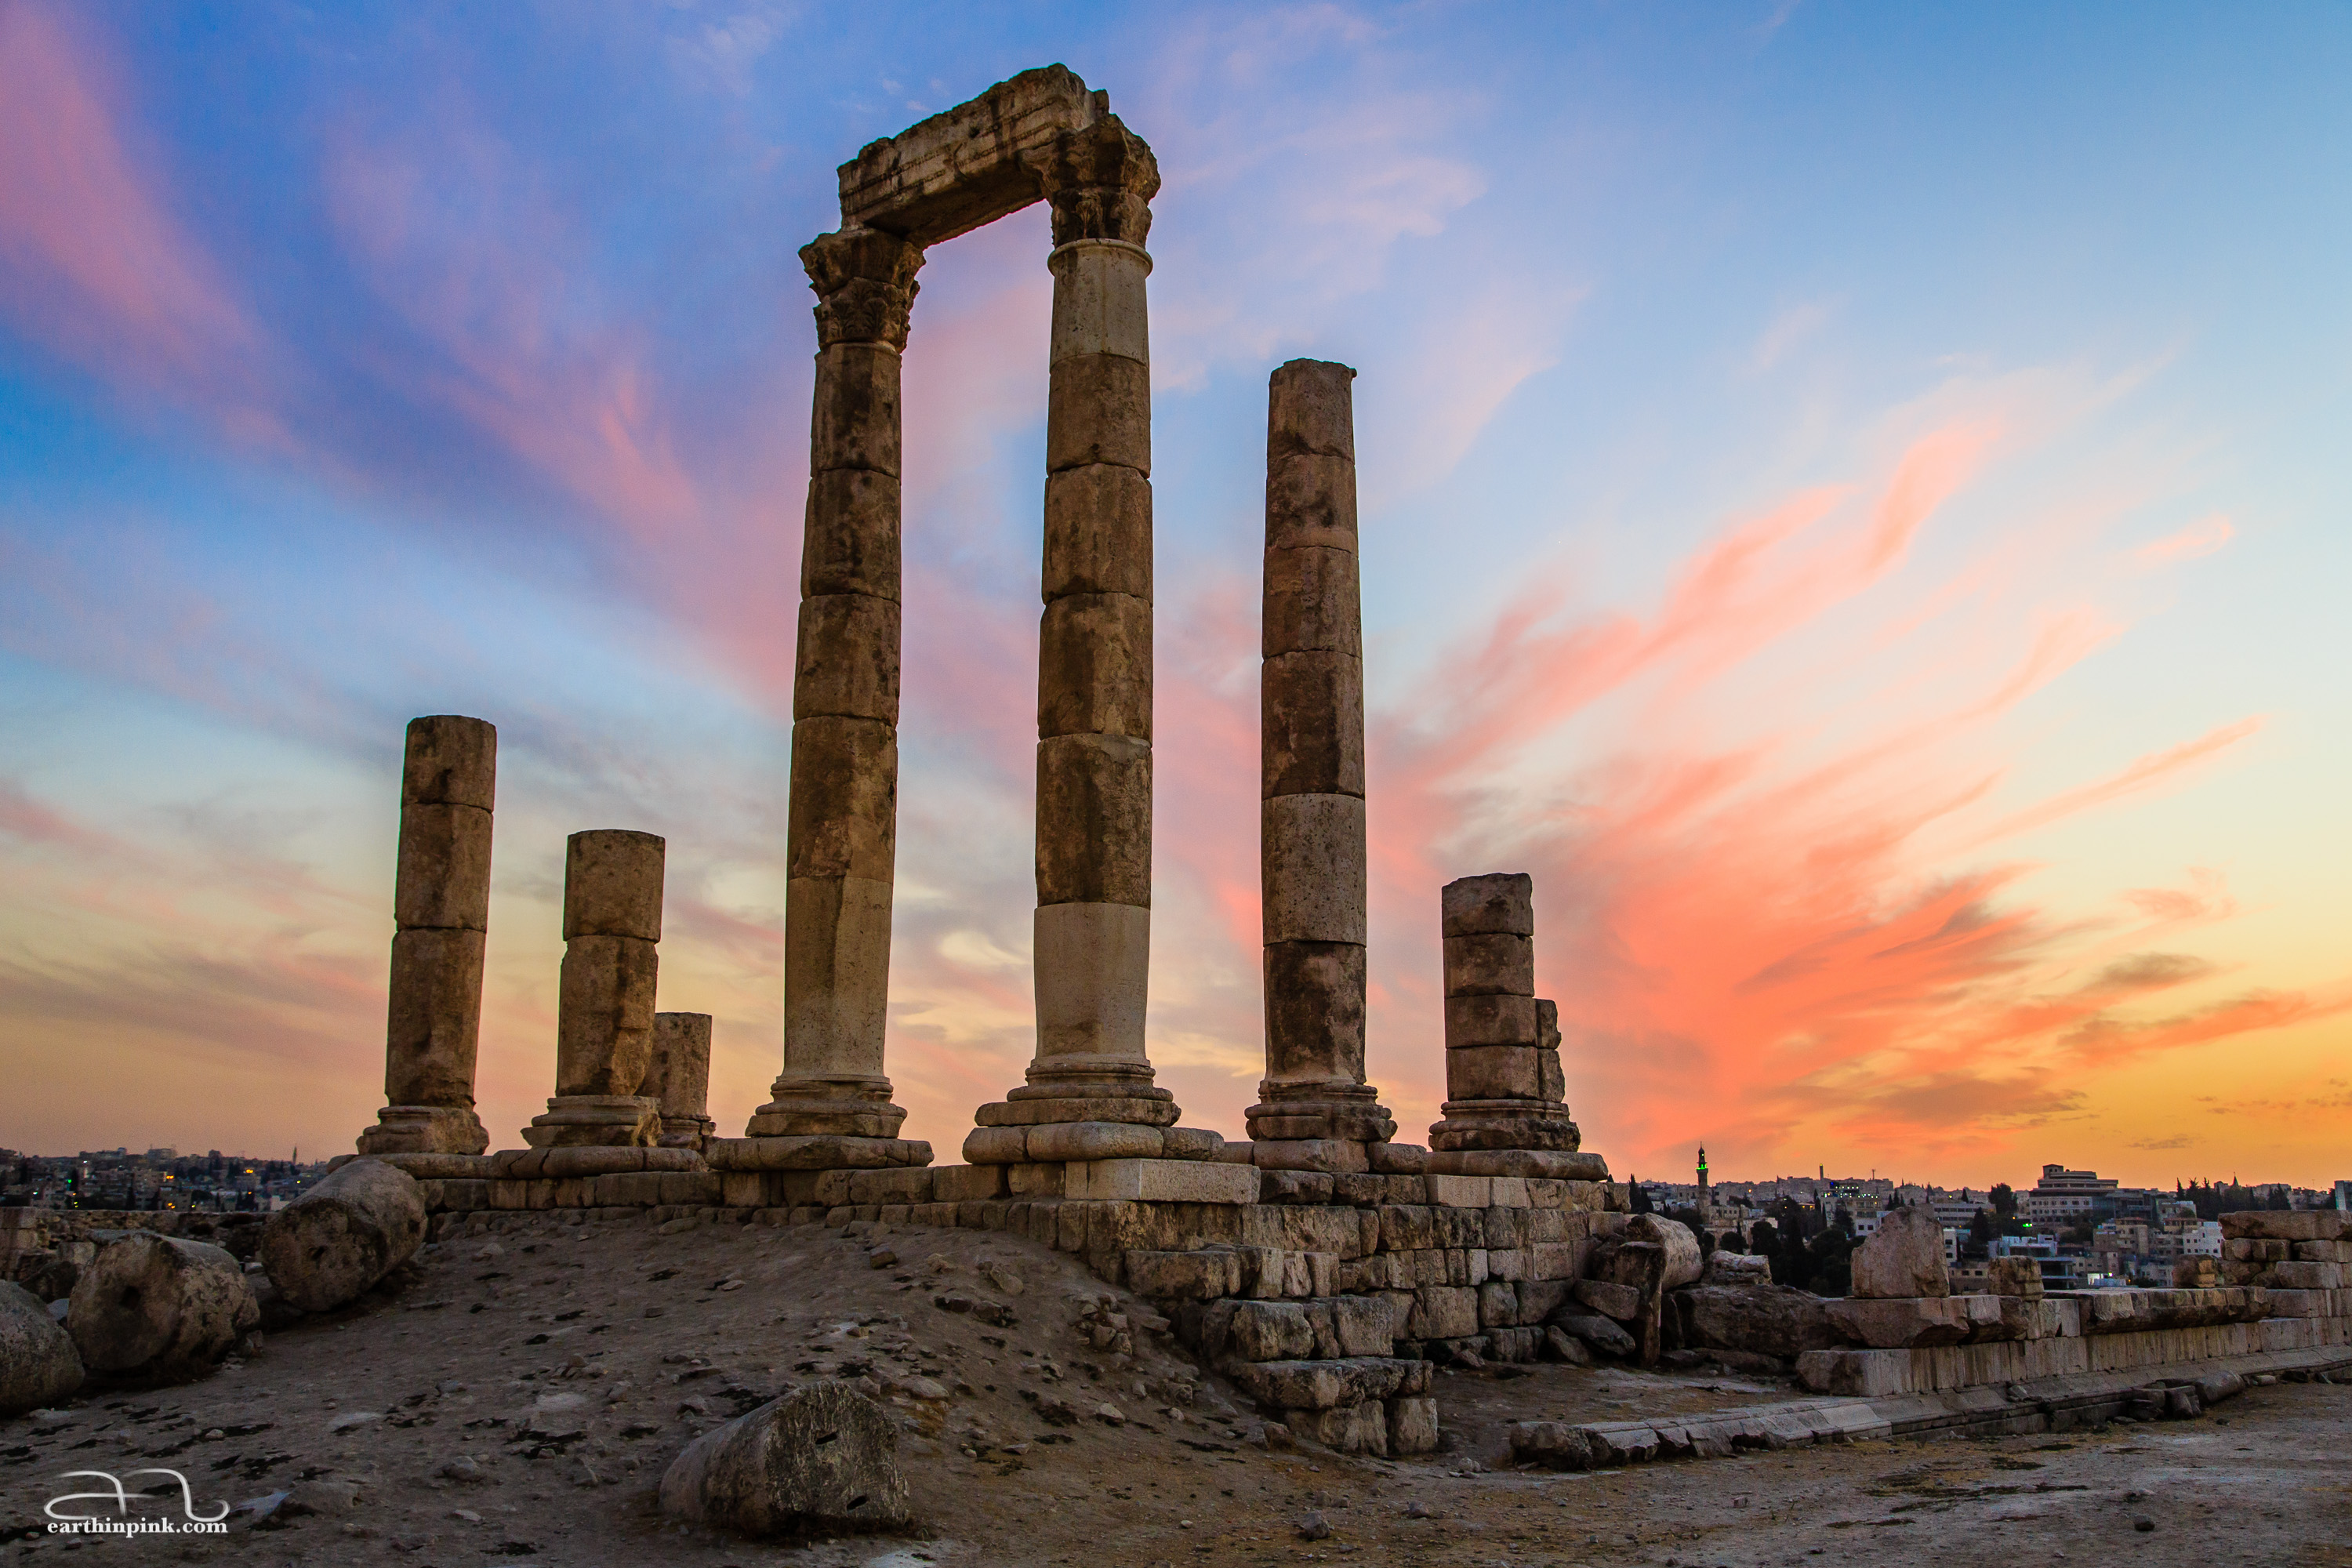 Sunset colours over Amman citadel